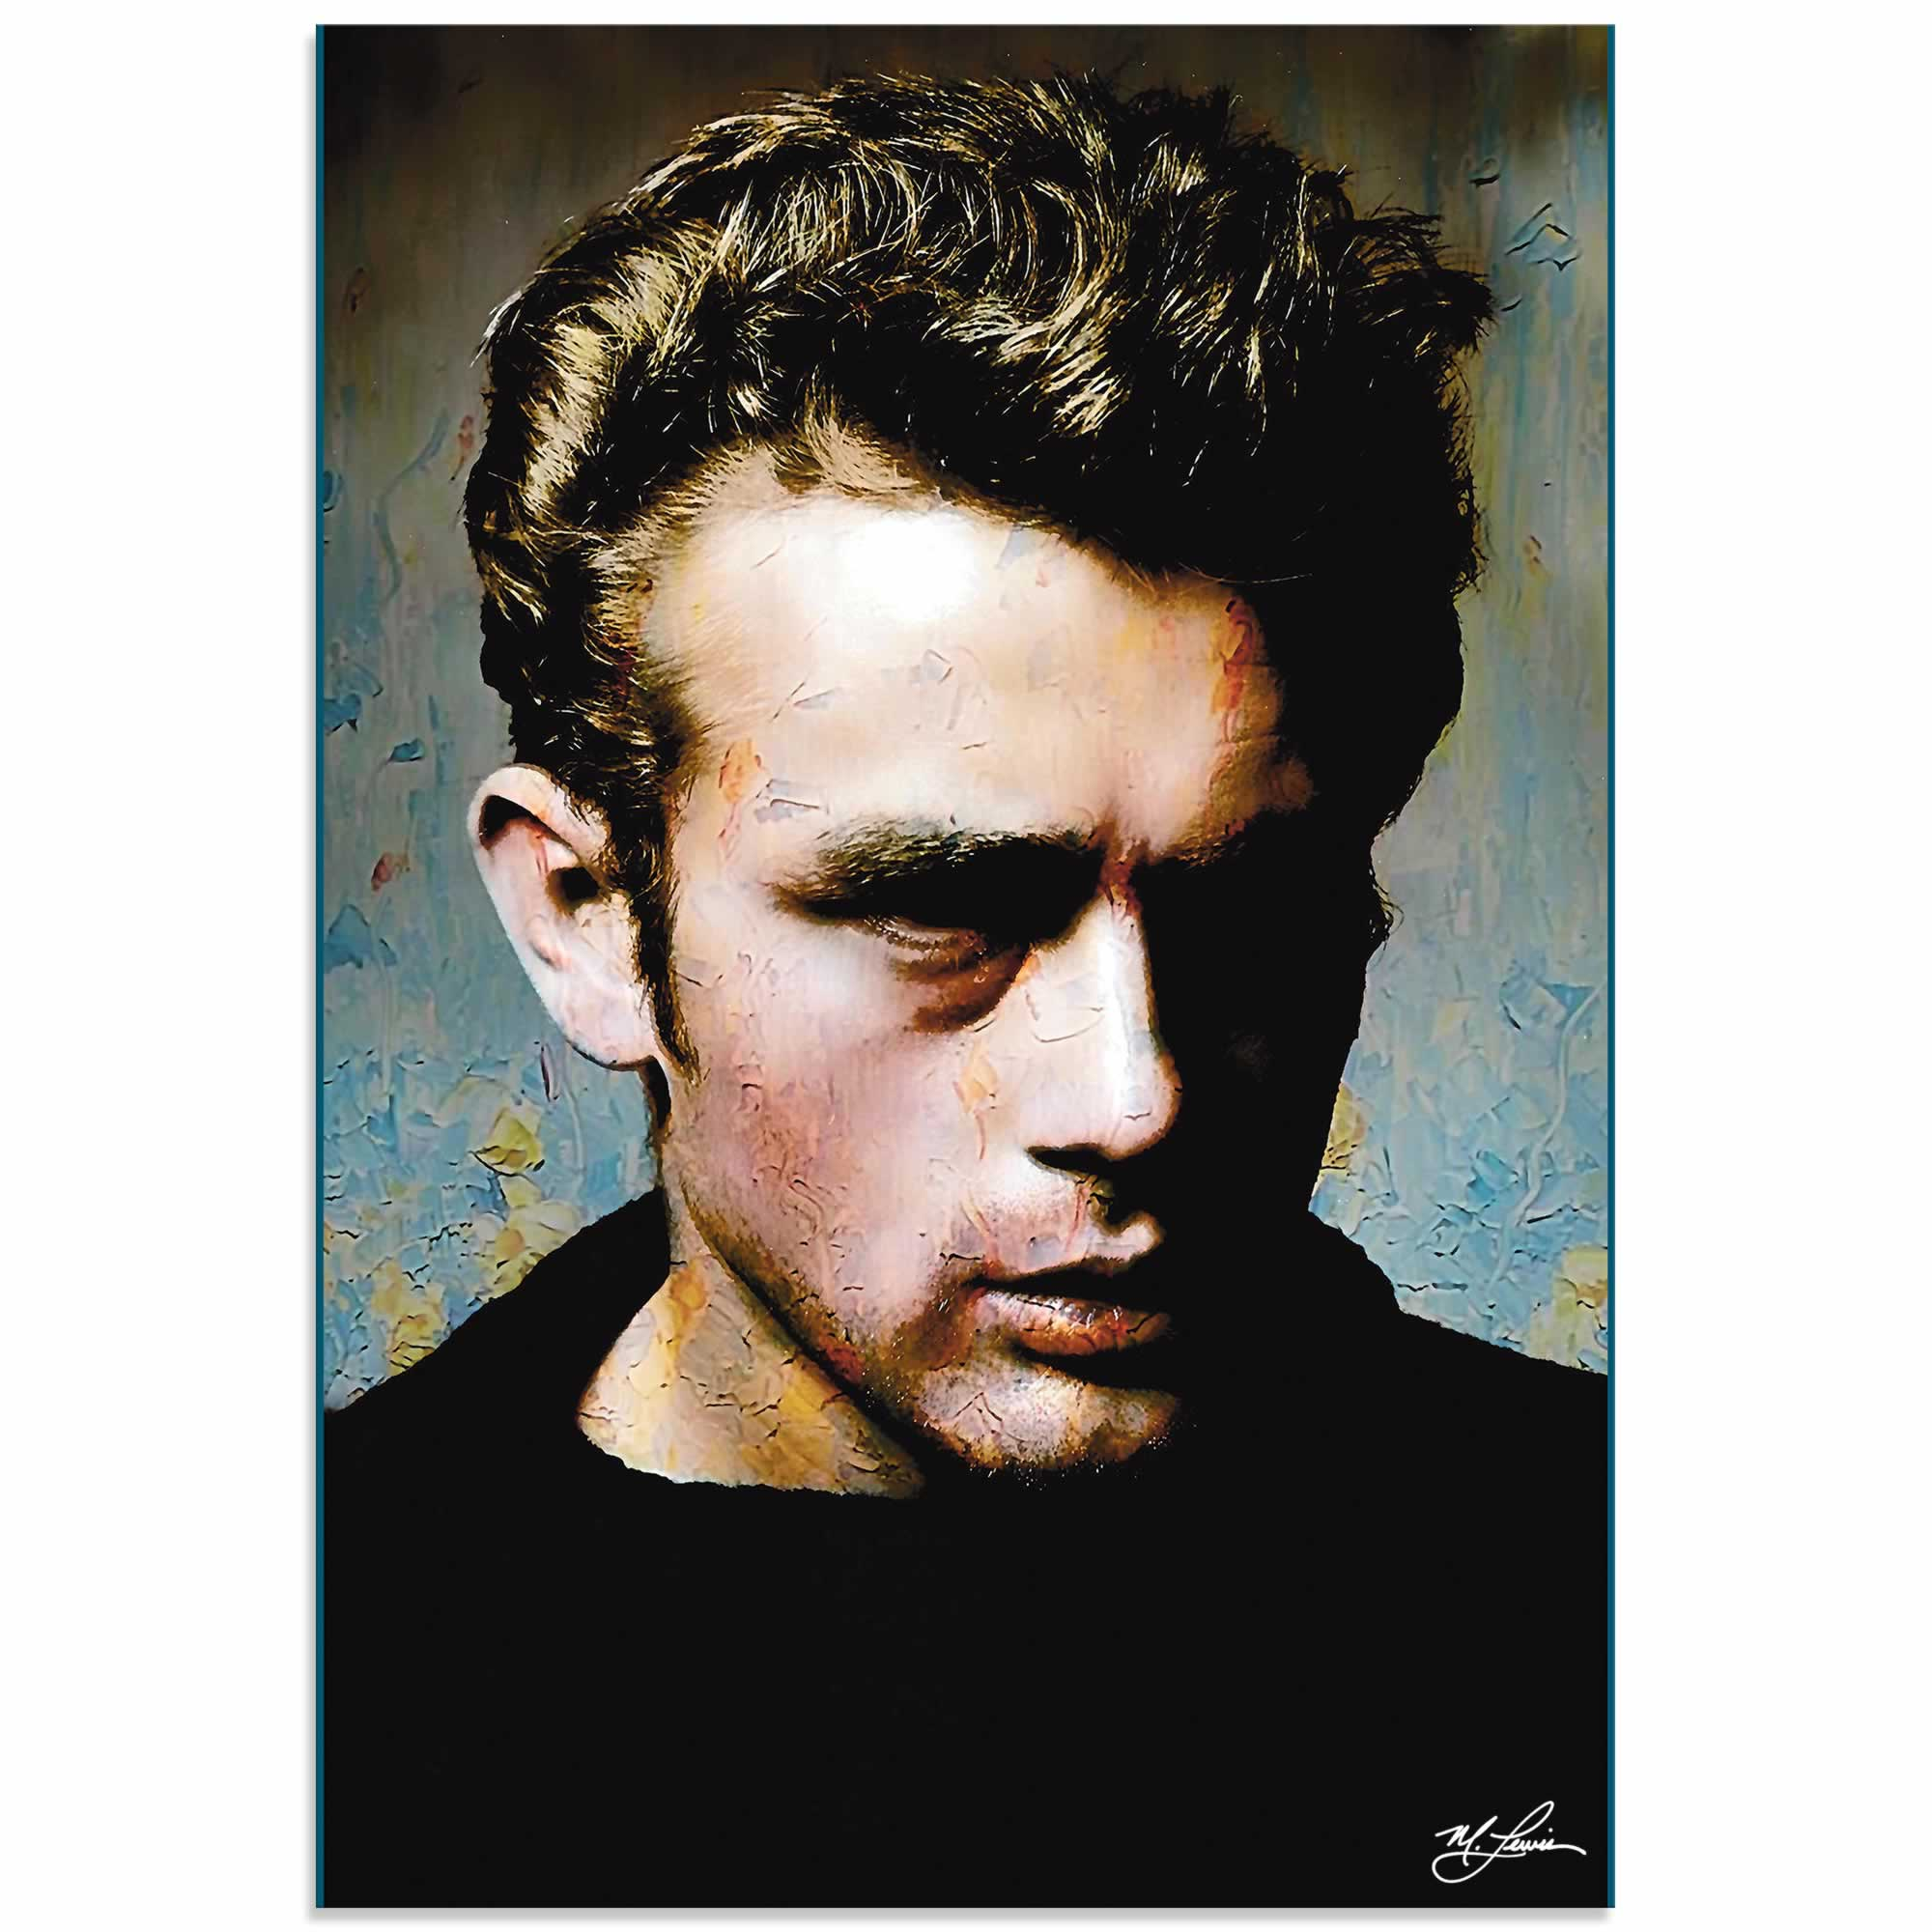 James Dean Gentle Trust | Pop Art Painting by Mark Lewis, Signed & Numbered Limited Edition - ML0014